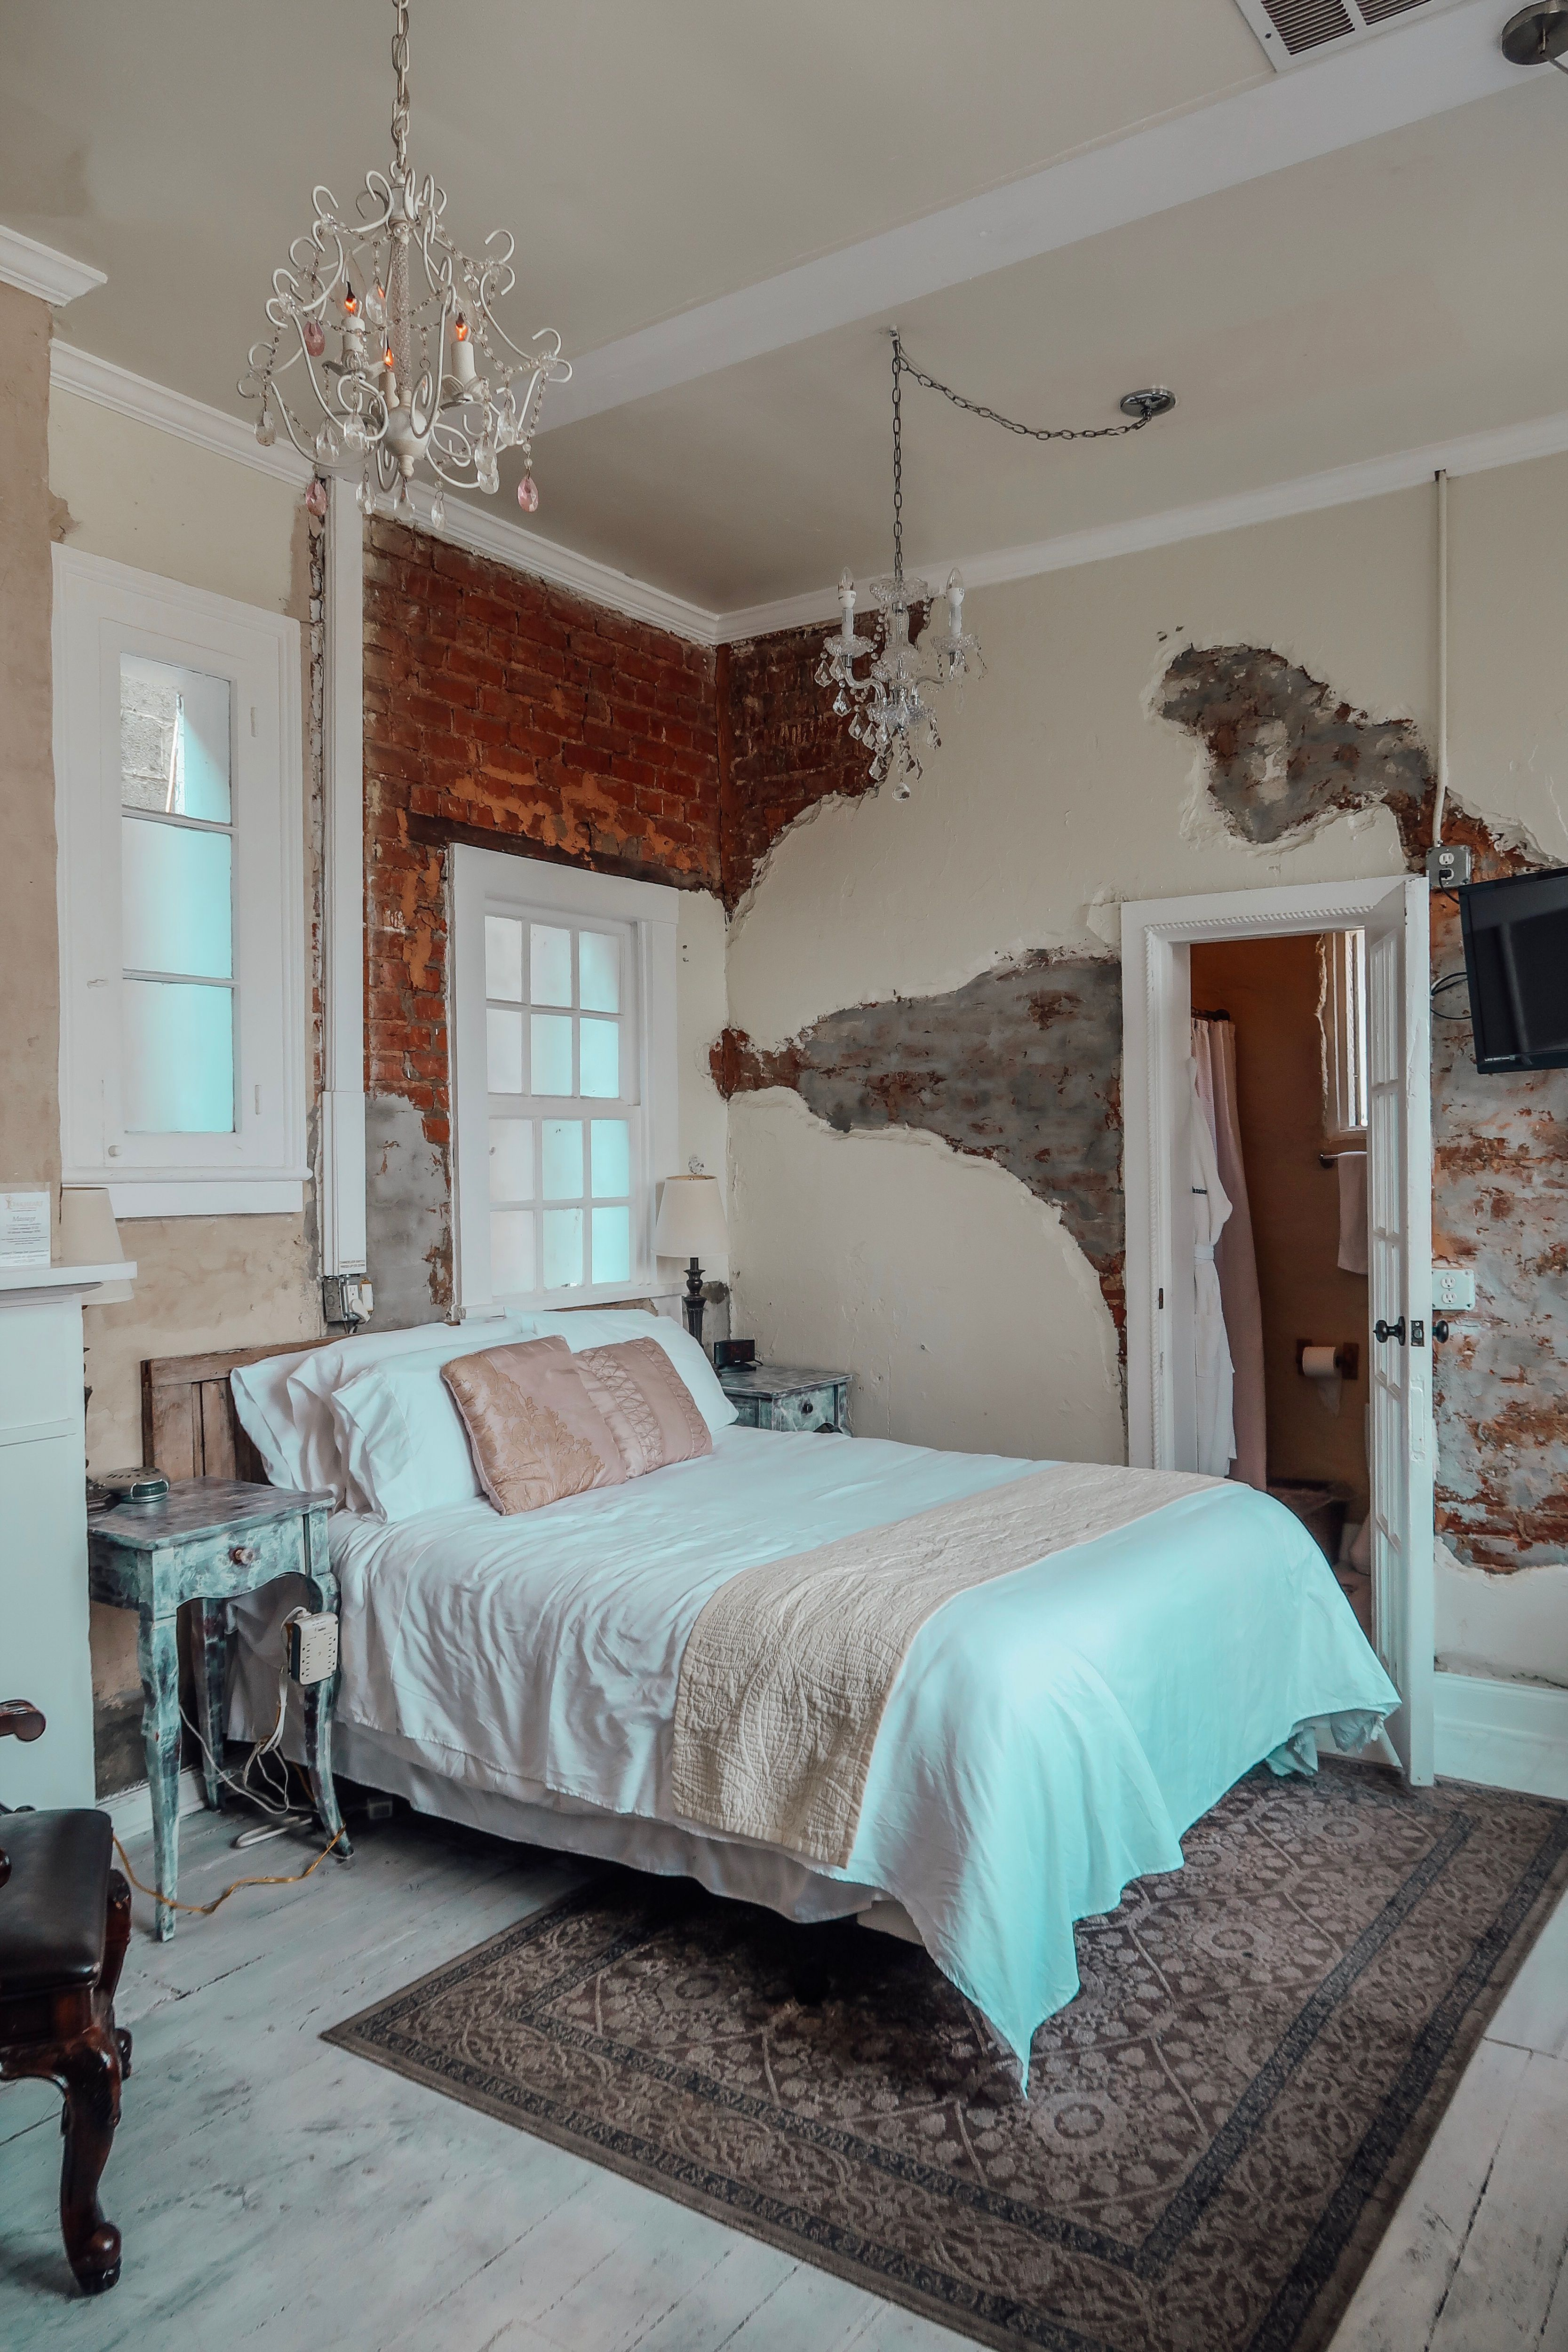 Our First Bed and Breakfast Experience New orleans